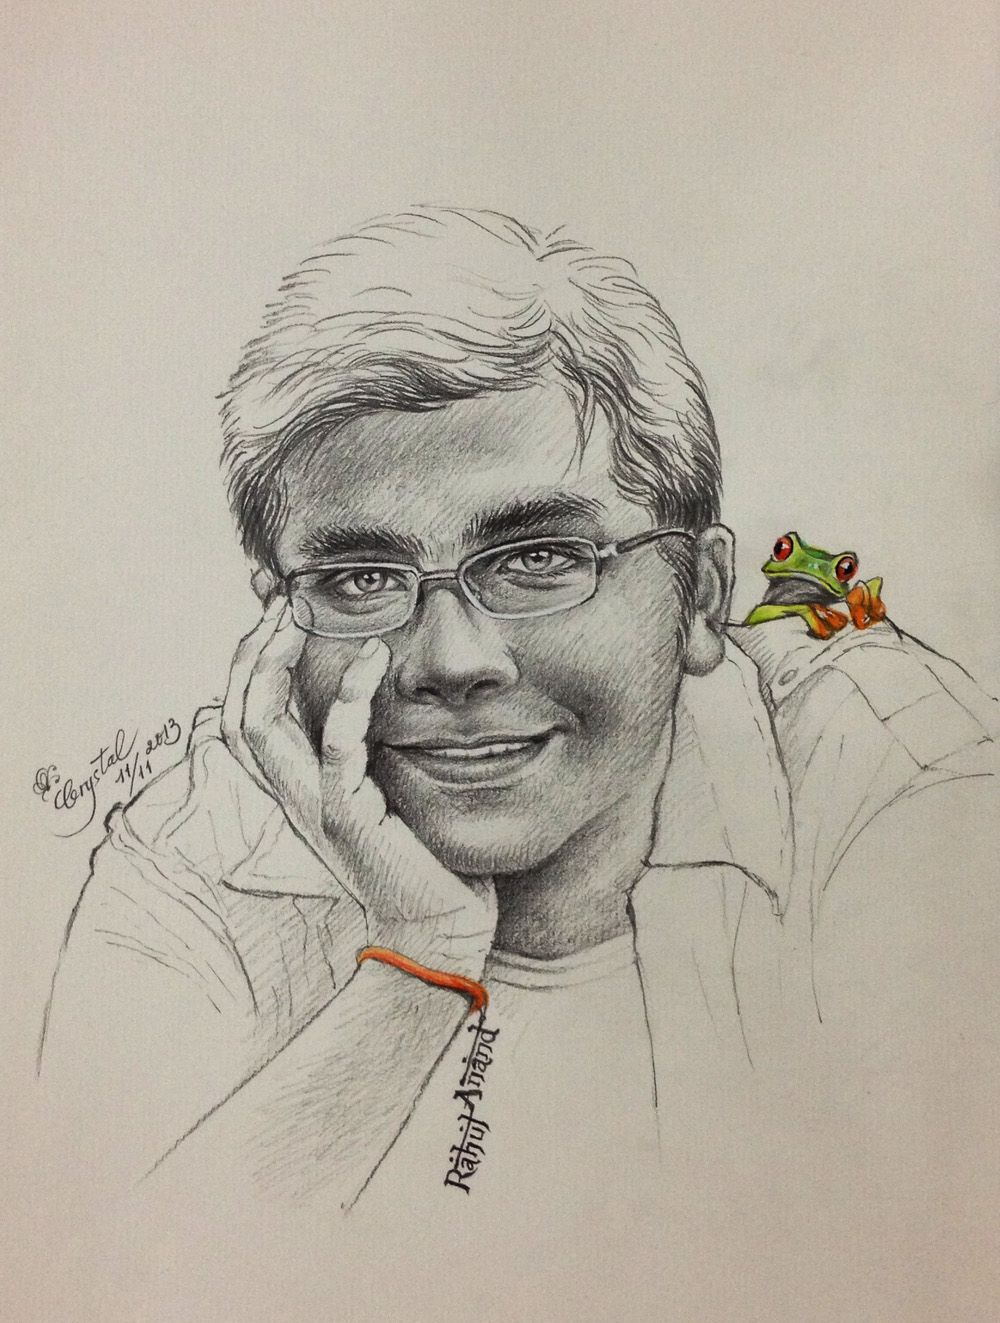 My pencil sketch on a4 paper a birthday gift for my friend rahul anand